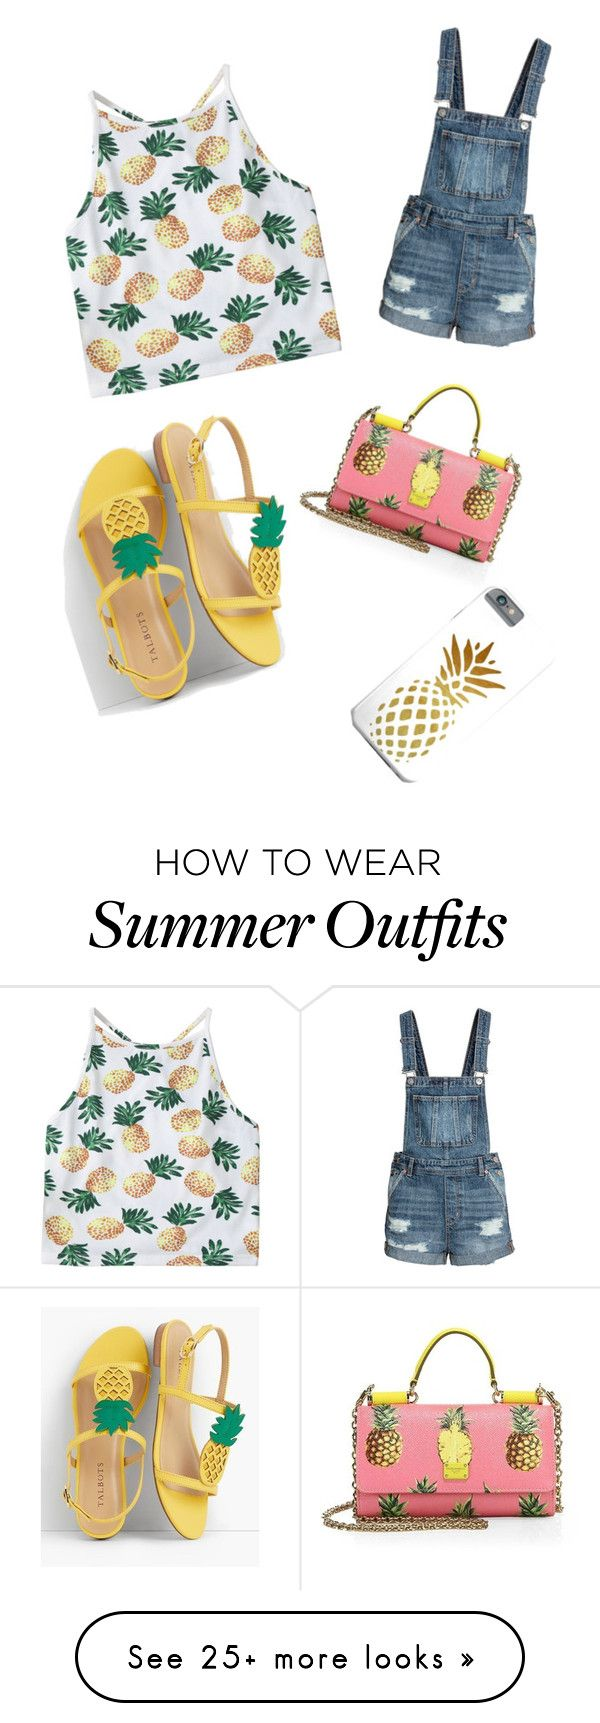 """Summer outfit"" by itszxabby on Polyvore featuring Talbots and Dolce&Gabbana"